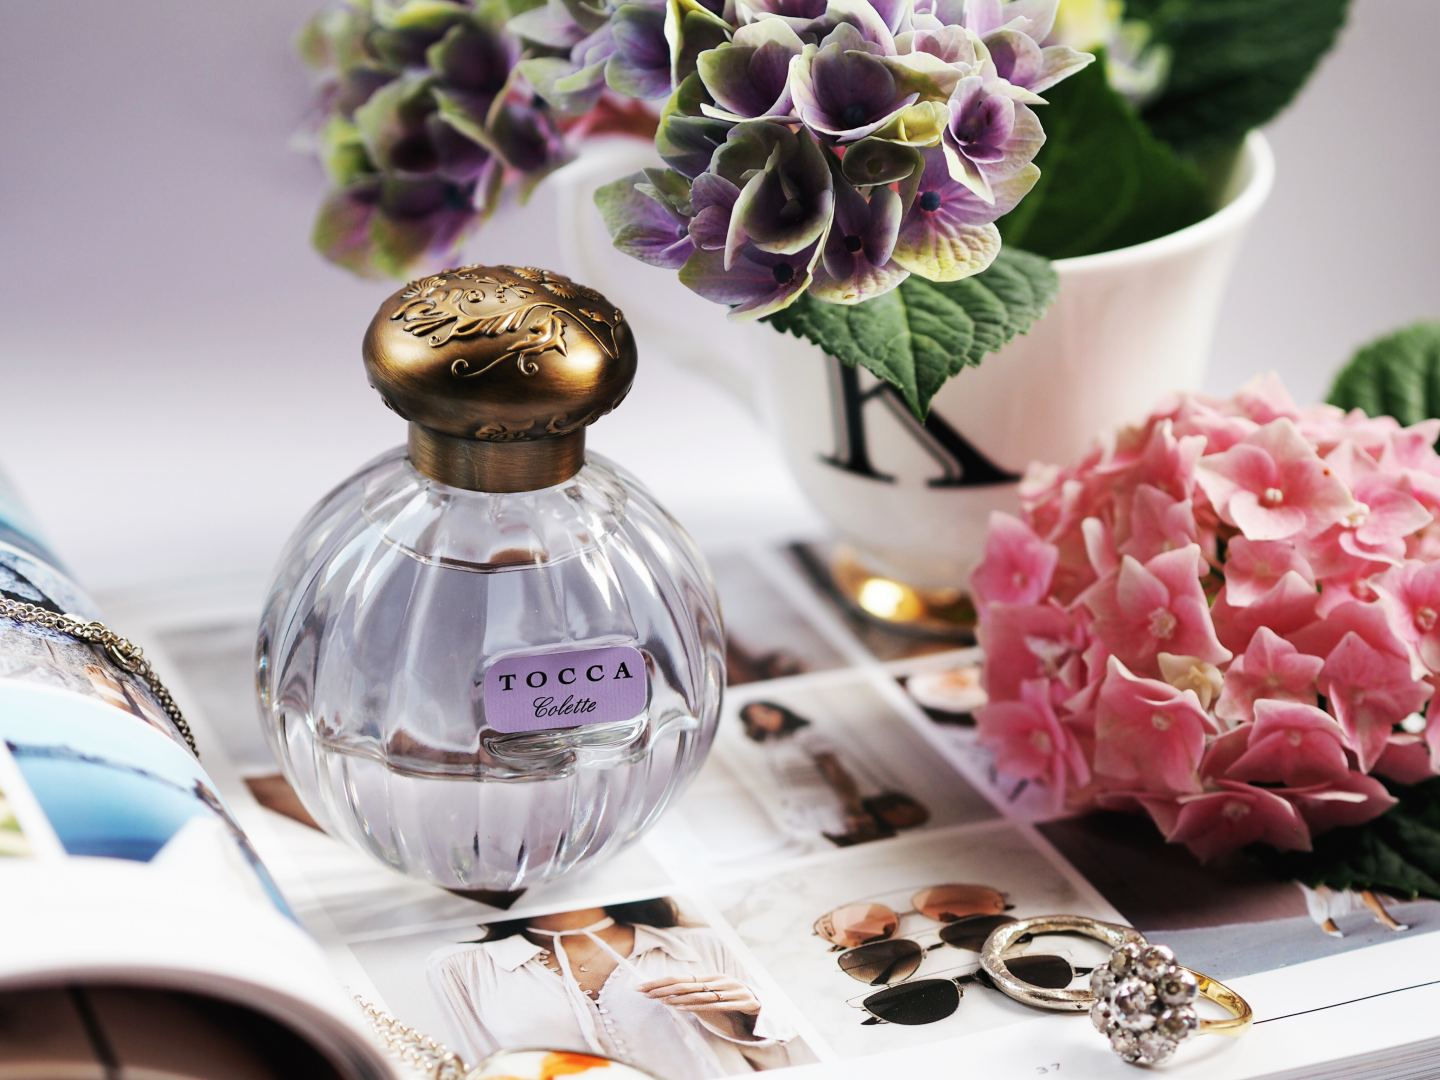 Tocca 'Colette' Perfume Review fragrance 2020